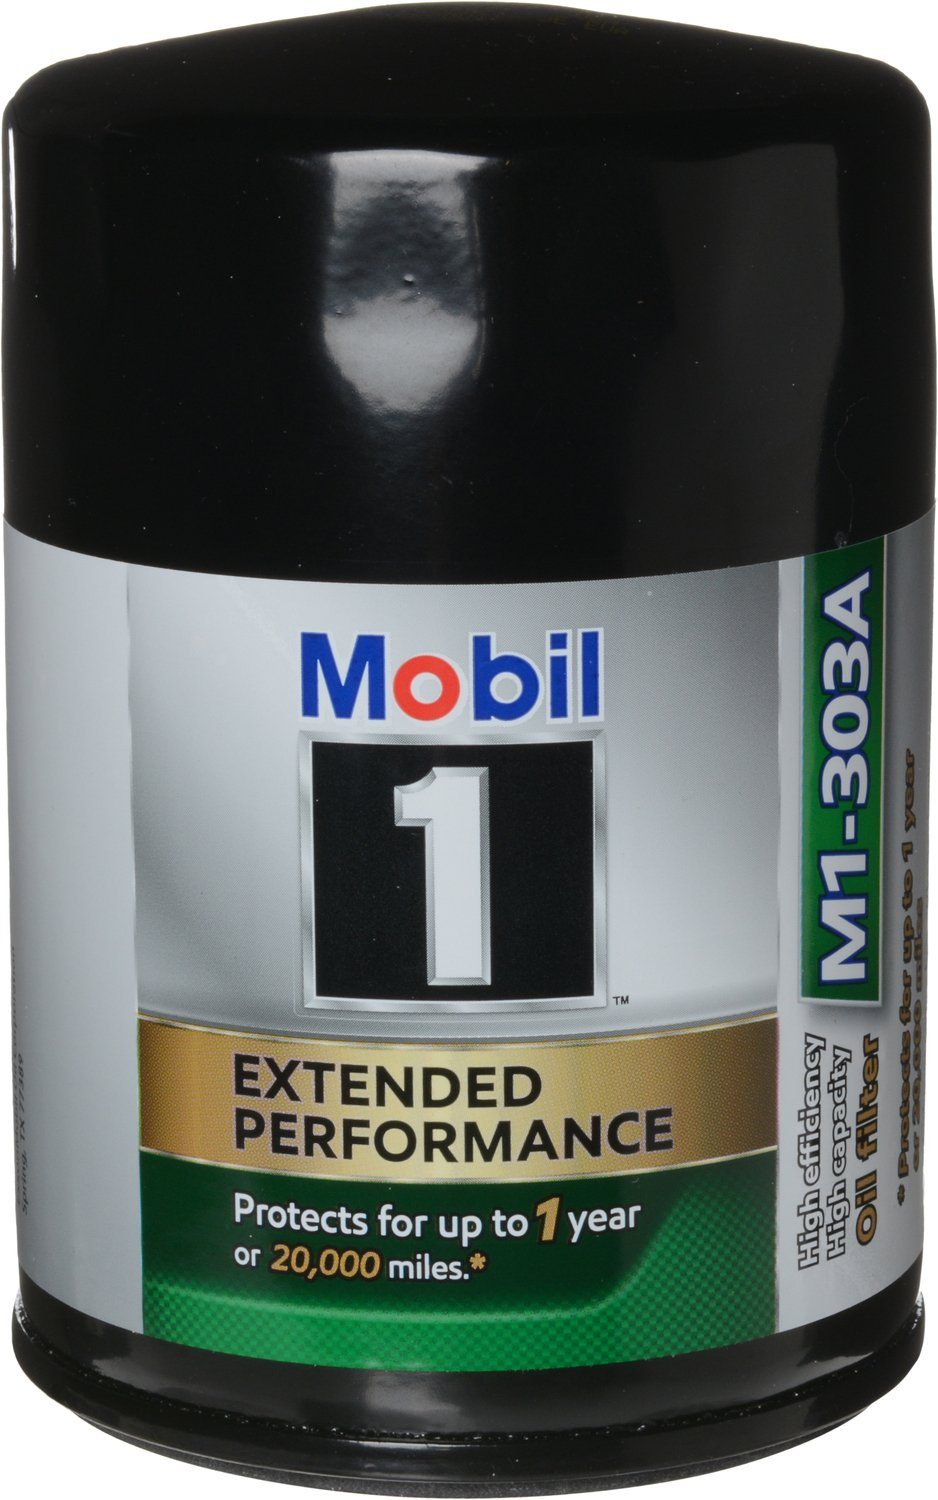 Mobil 1 M1-303A Extended Performance Oil Filter, 2 Pack, by Mobil 1